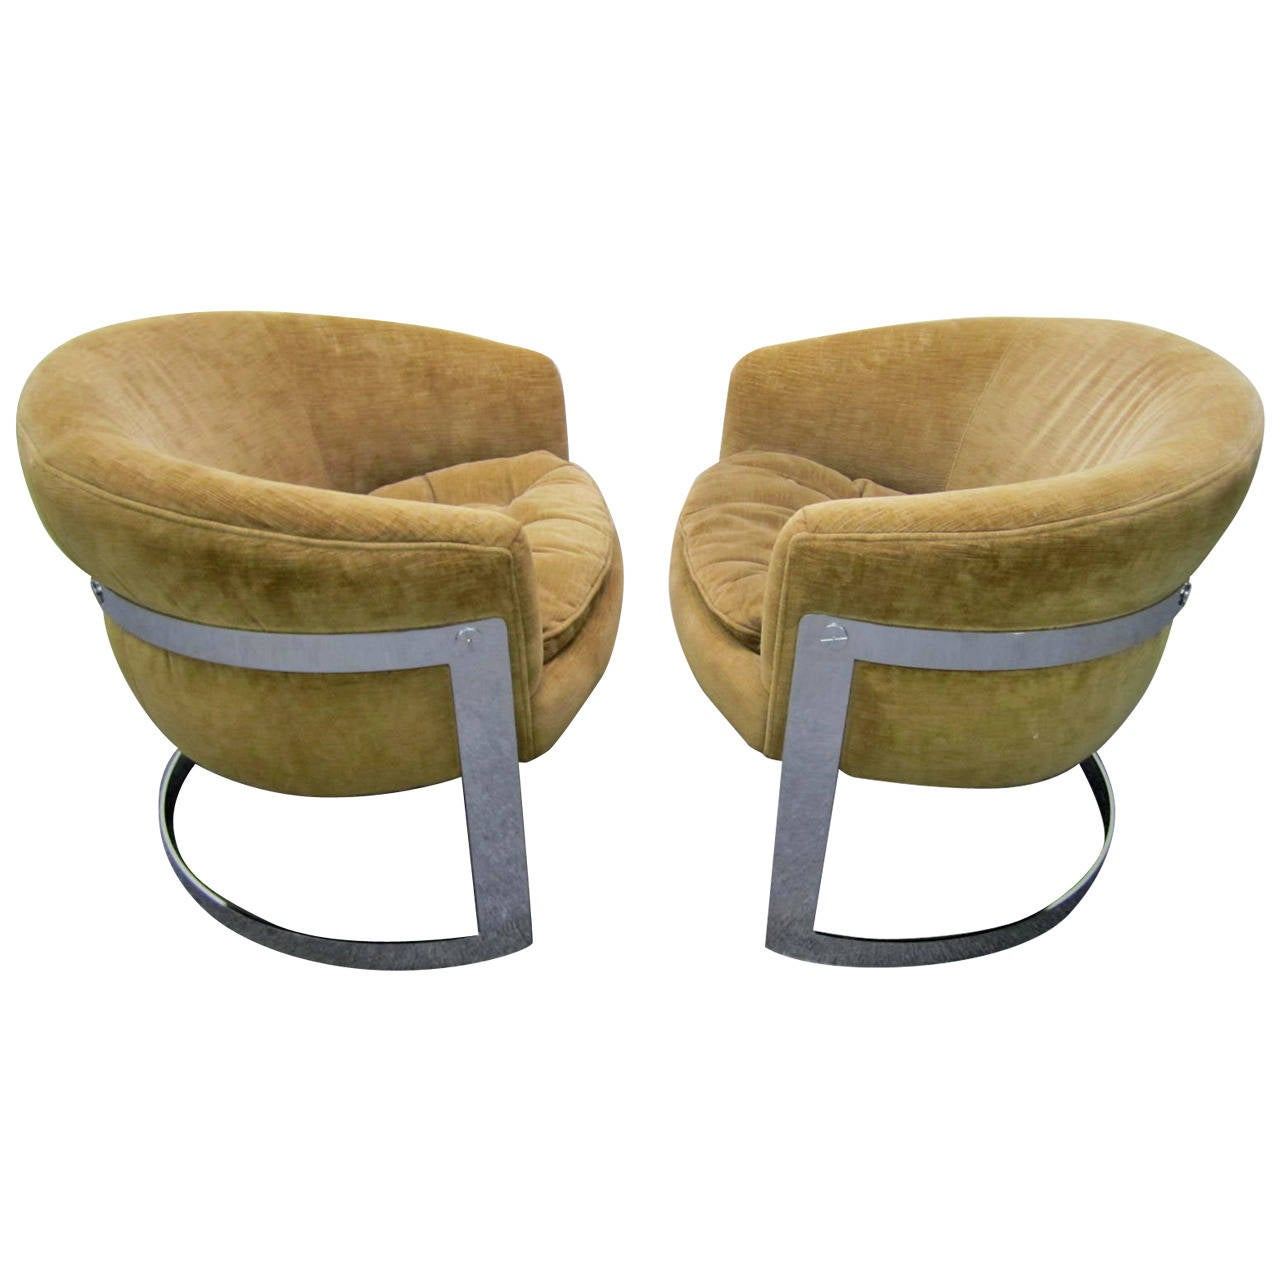 Merveilleux Pair Of Barrel Back Chrome Lounge Chairs, Mid Century Modern